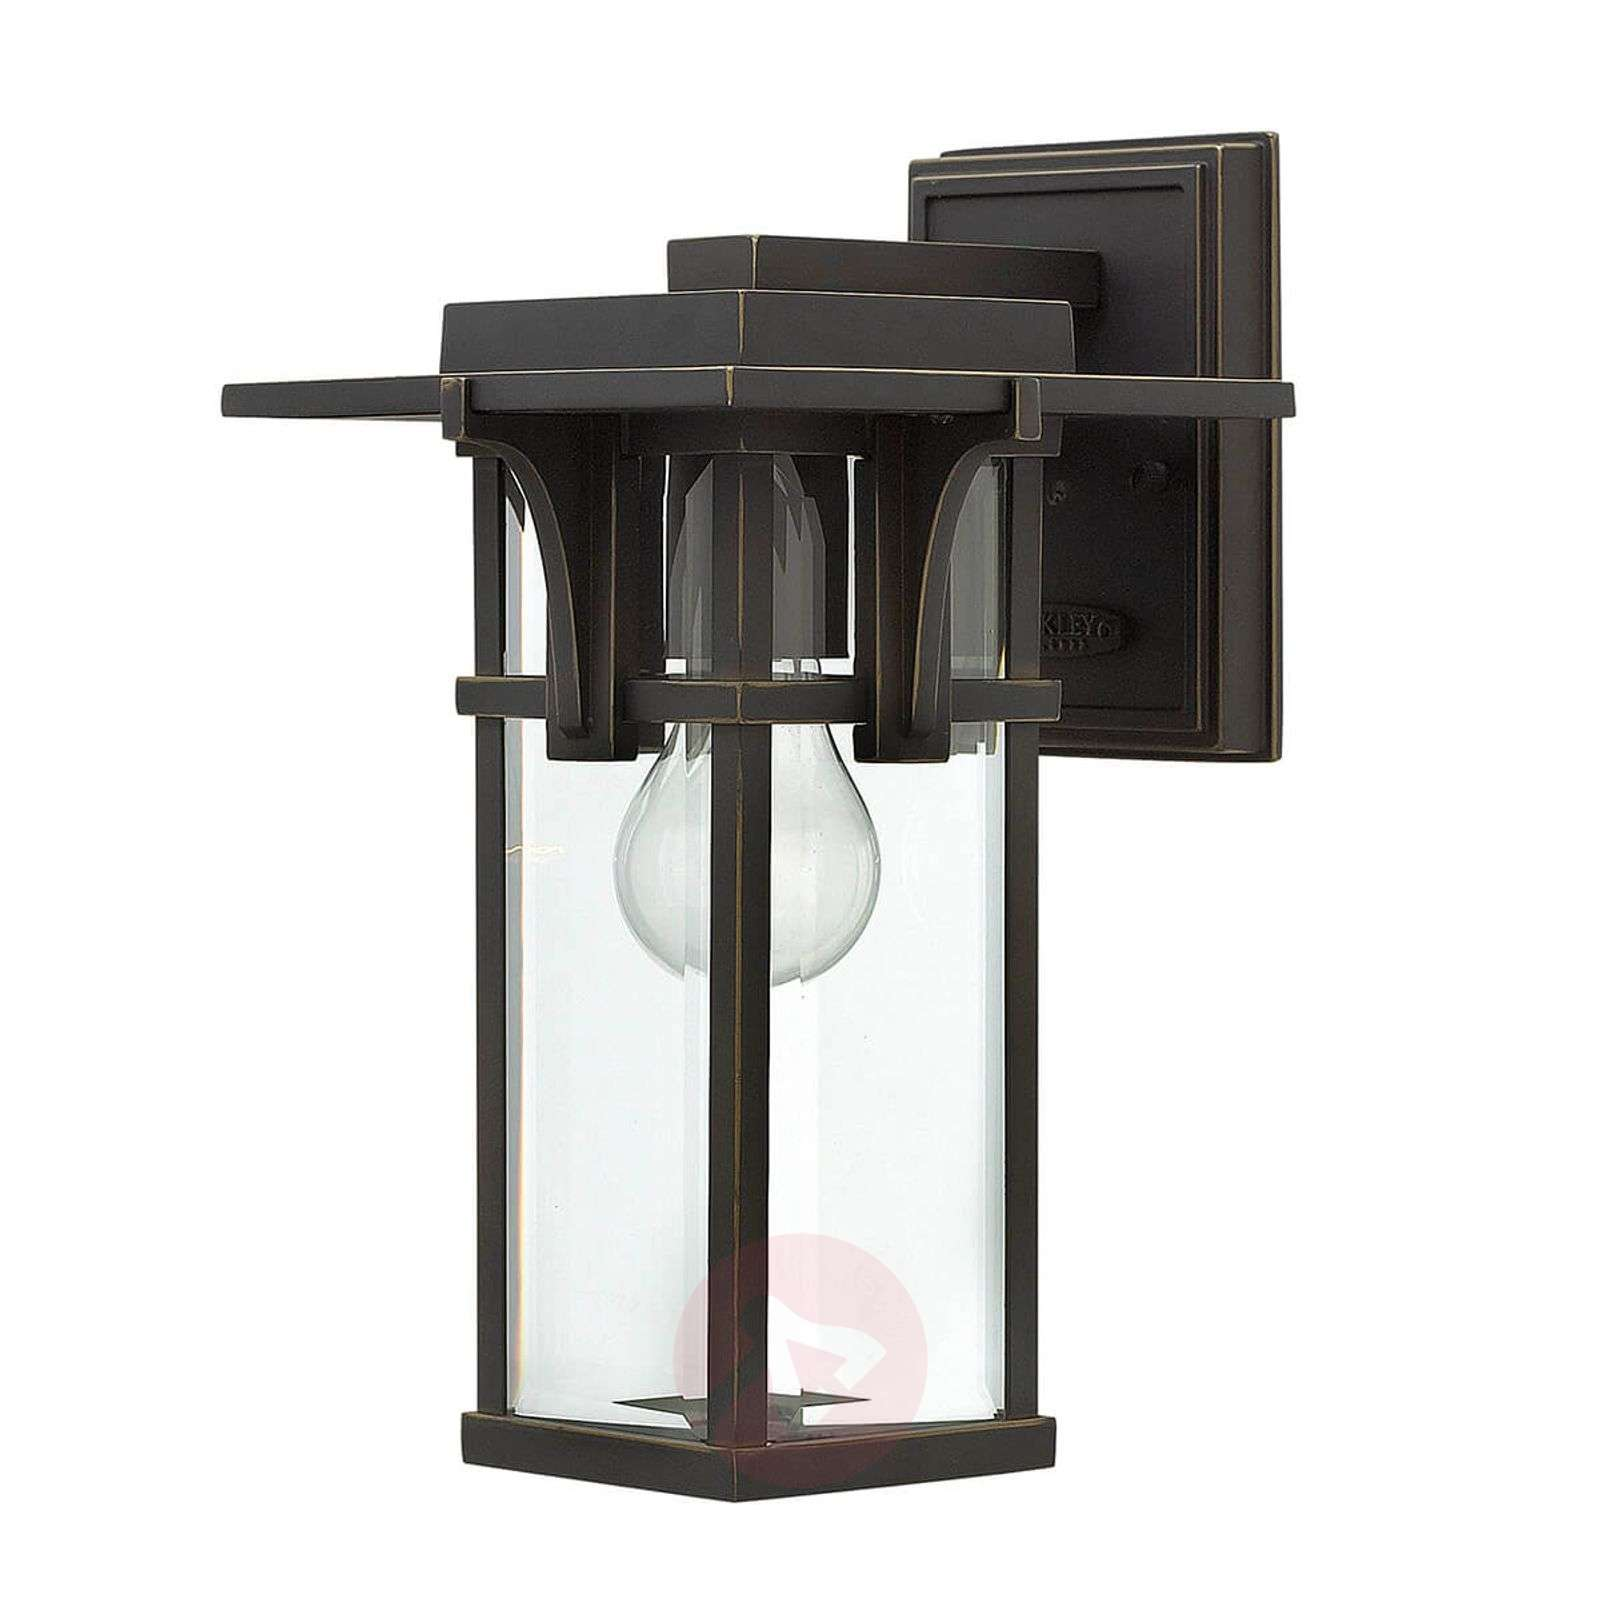 Manhattan outdoor wall lamp in industrial style-3048688-01